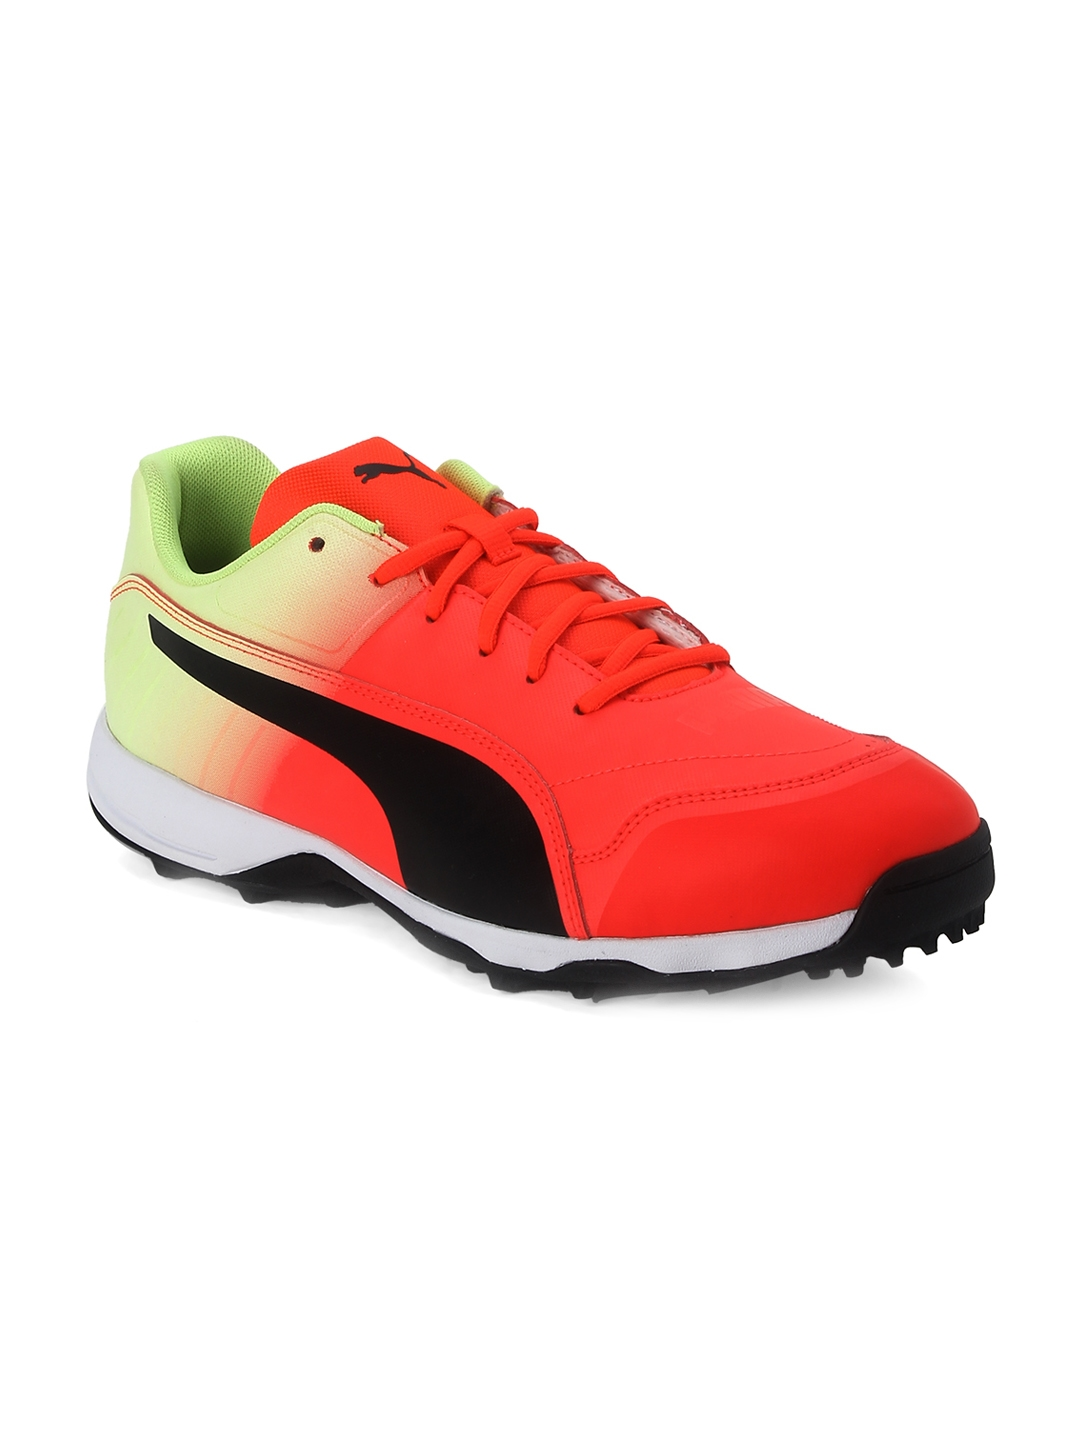 4c65e23c5 Buy One8 X PUMA Men Red Cricket Shoes - Sports Shoes for Men 4714271 ...